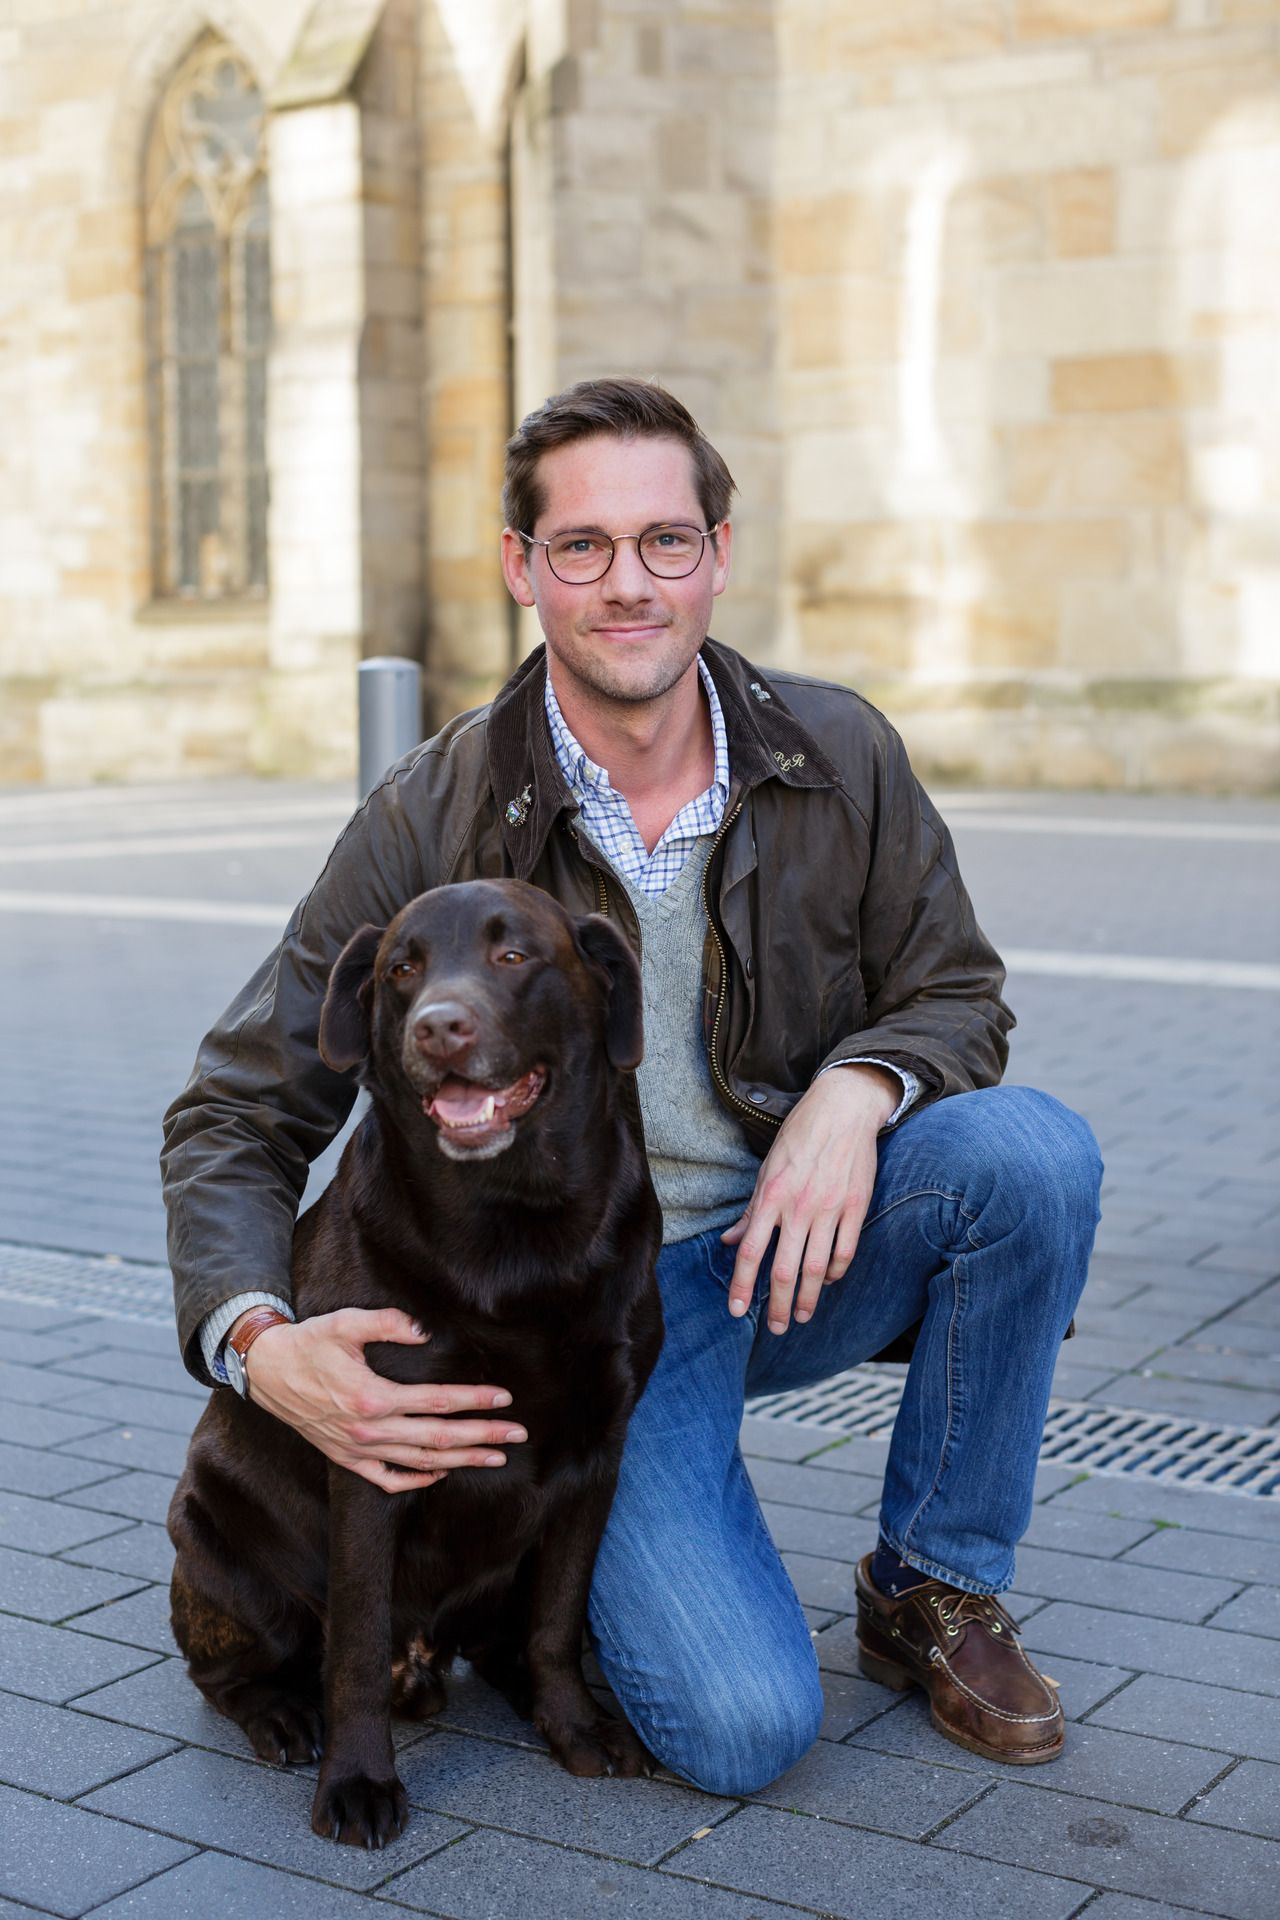 29df5841b91 We spotted Philip in his Barbour wax jacket with his labrador on a sunny  day in Dortmund.